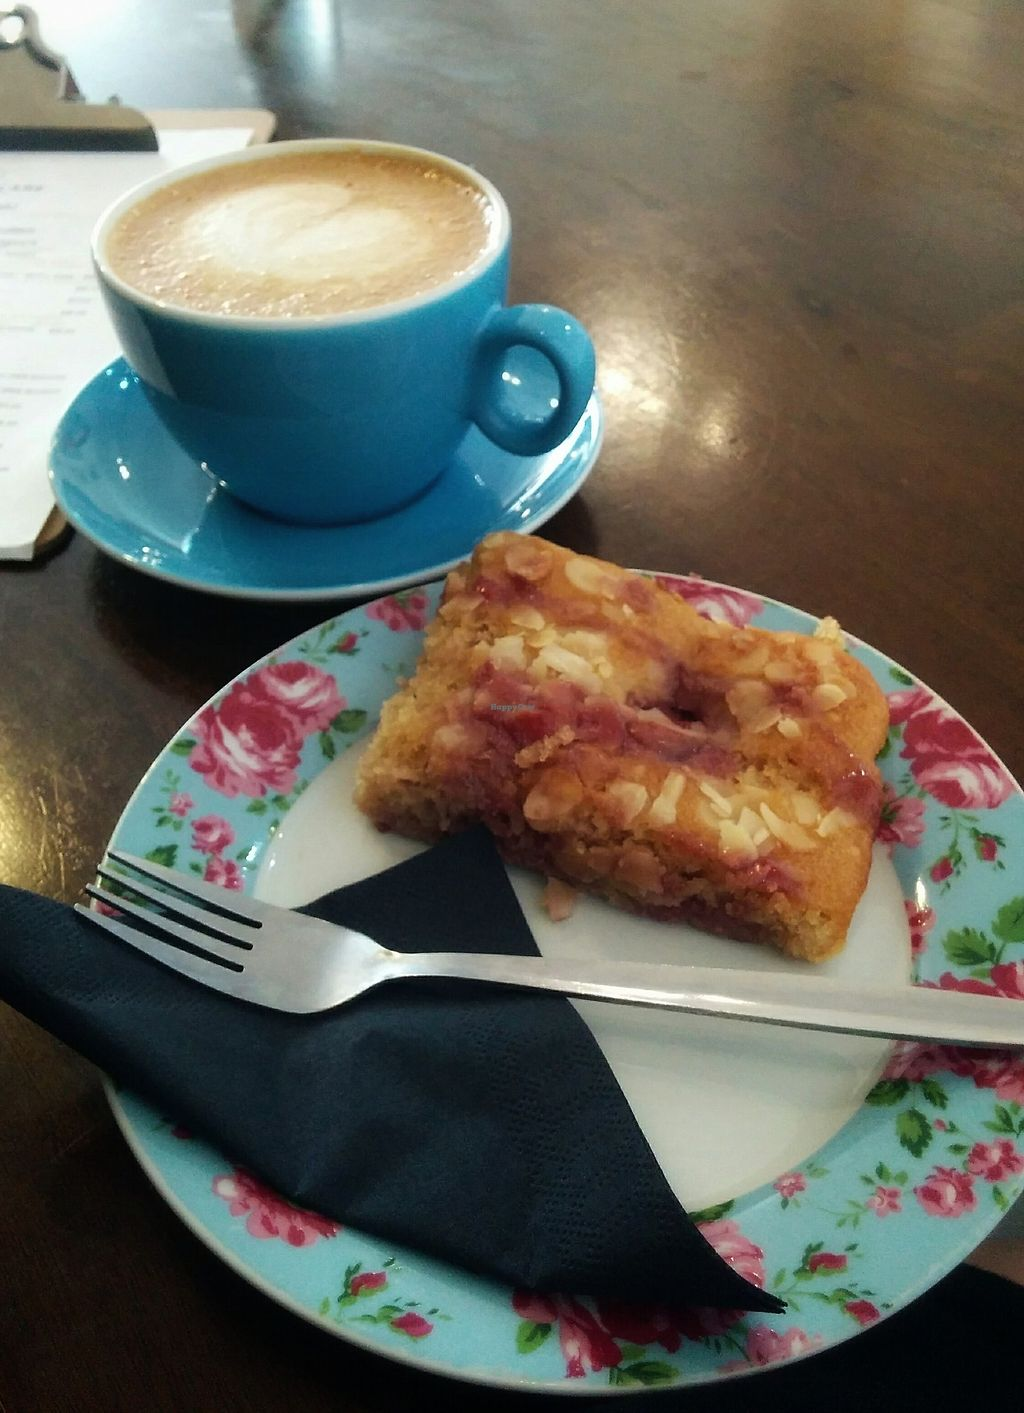 """Photo of Orchard Lane Coffee House  by <a href=""""/members/profile/Pupnik"""">Pupnik</a> <br/>Vegan raspberry slice <br/> November 16, 2017  - <a href='/contact/abuse/image/105314/326291'>Report</a>"""